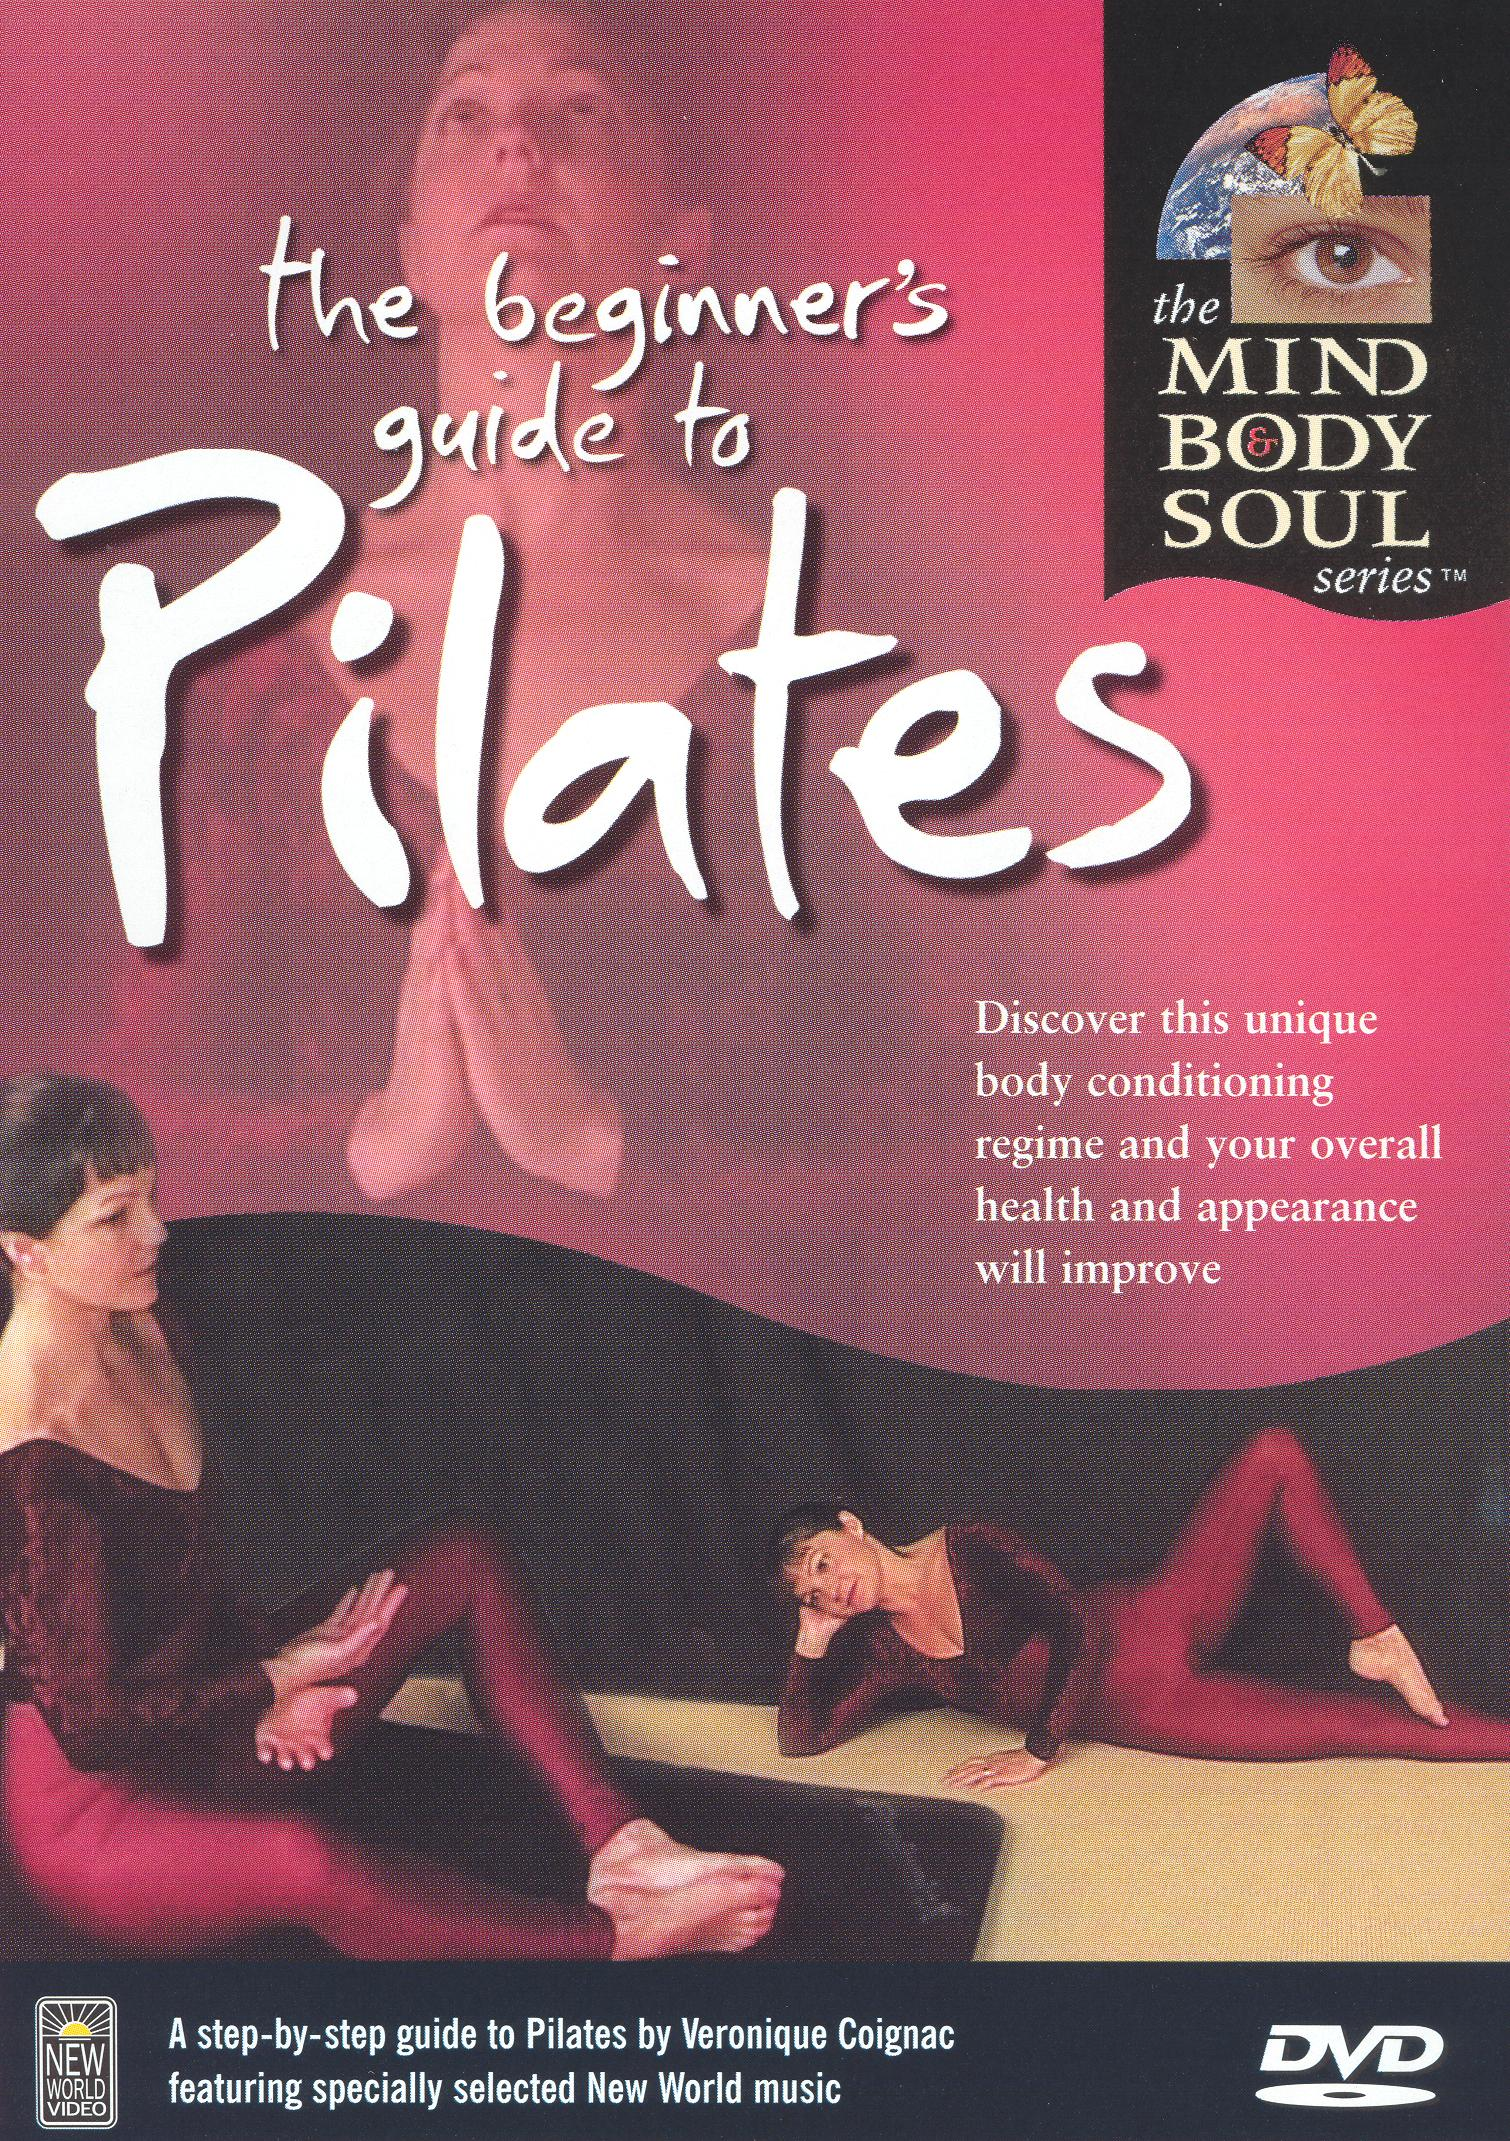 The Beginner's Guide to Pilates